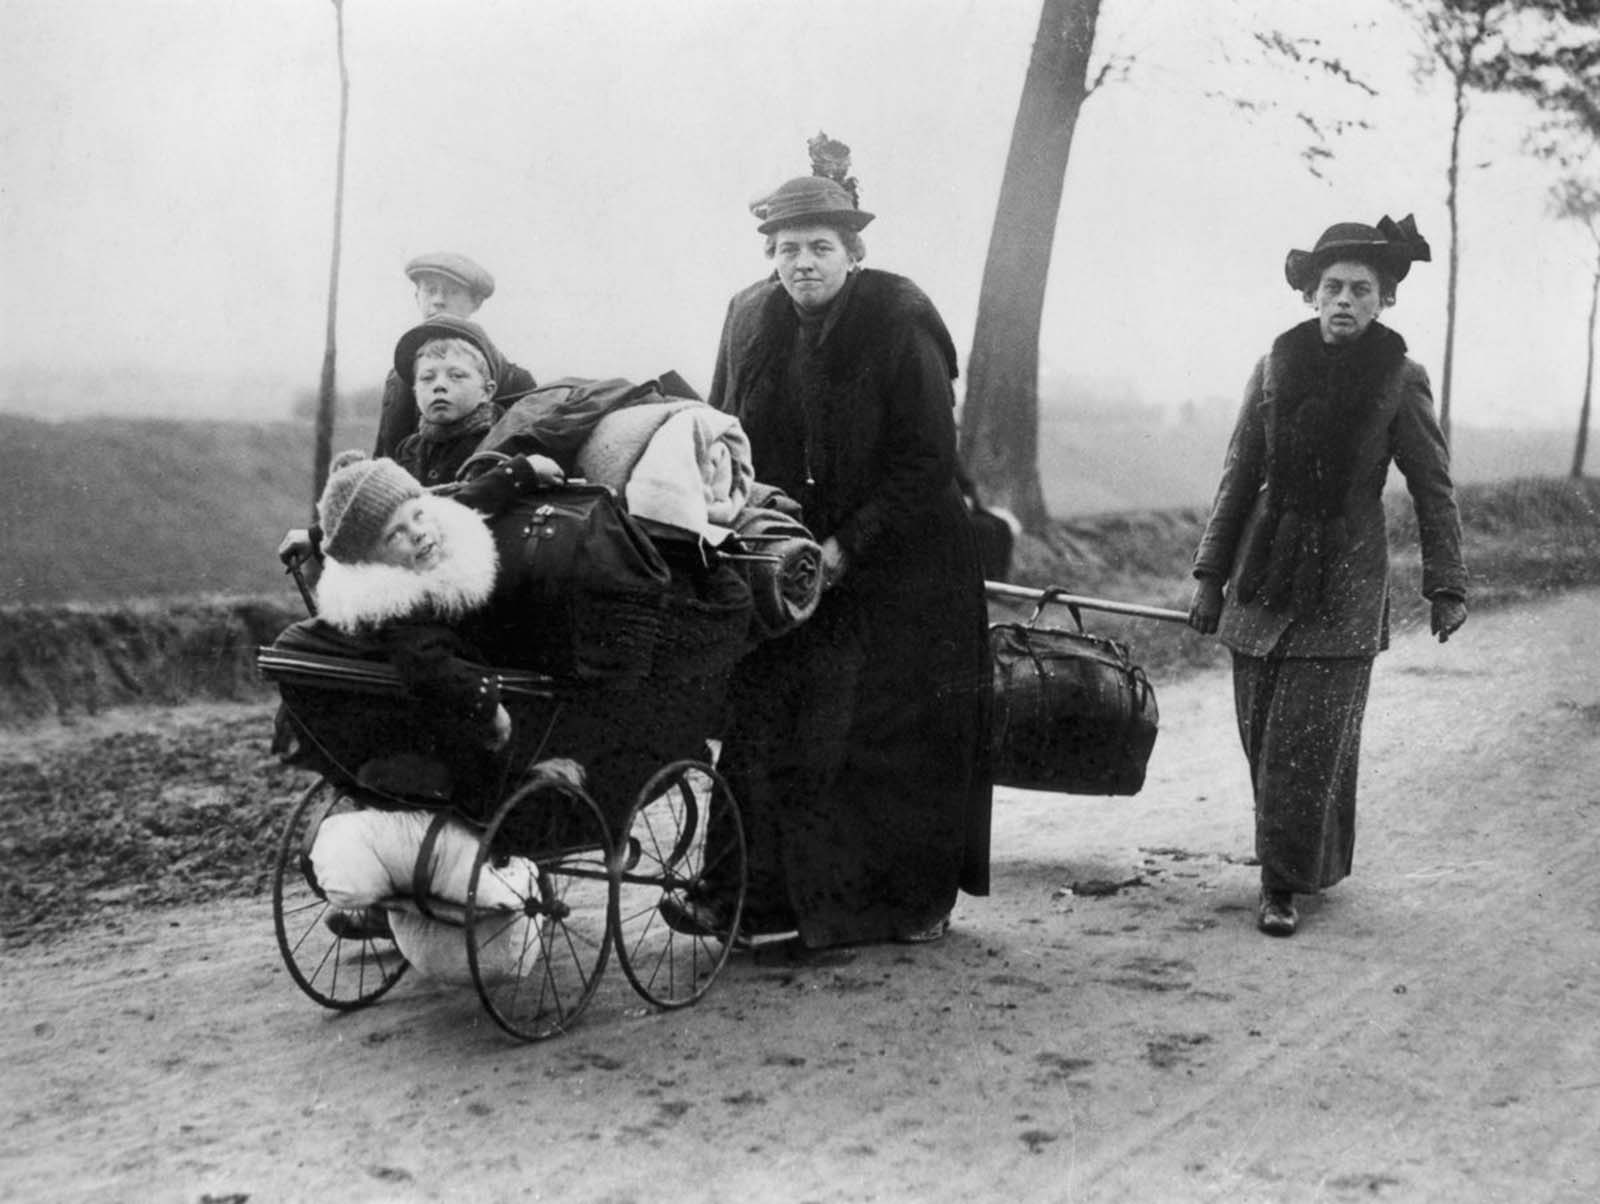 Belgian refugees carry their belongings ahead of invading troops through Northern France. 1914.